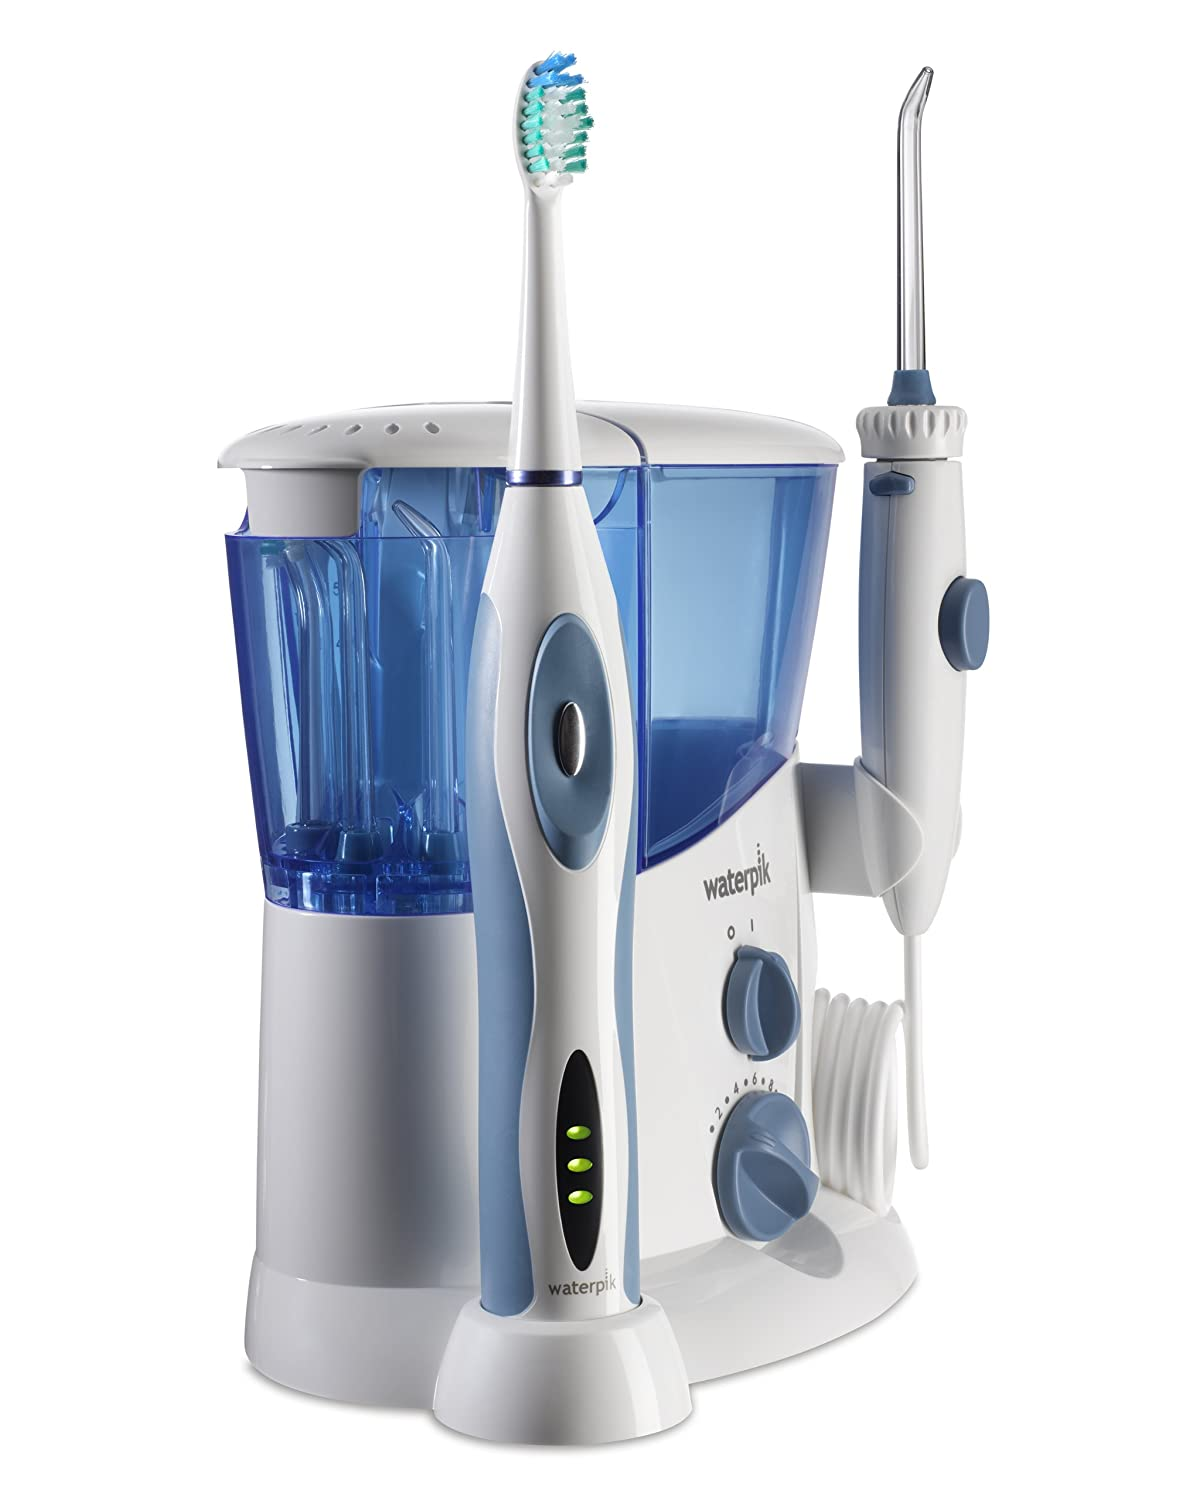 best water flosser Best Water flosser : Detailed Guide To Choose The Best Water flosser ! Tips & Reviews 71ERsA99bdL